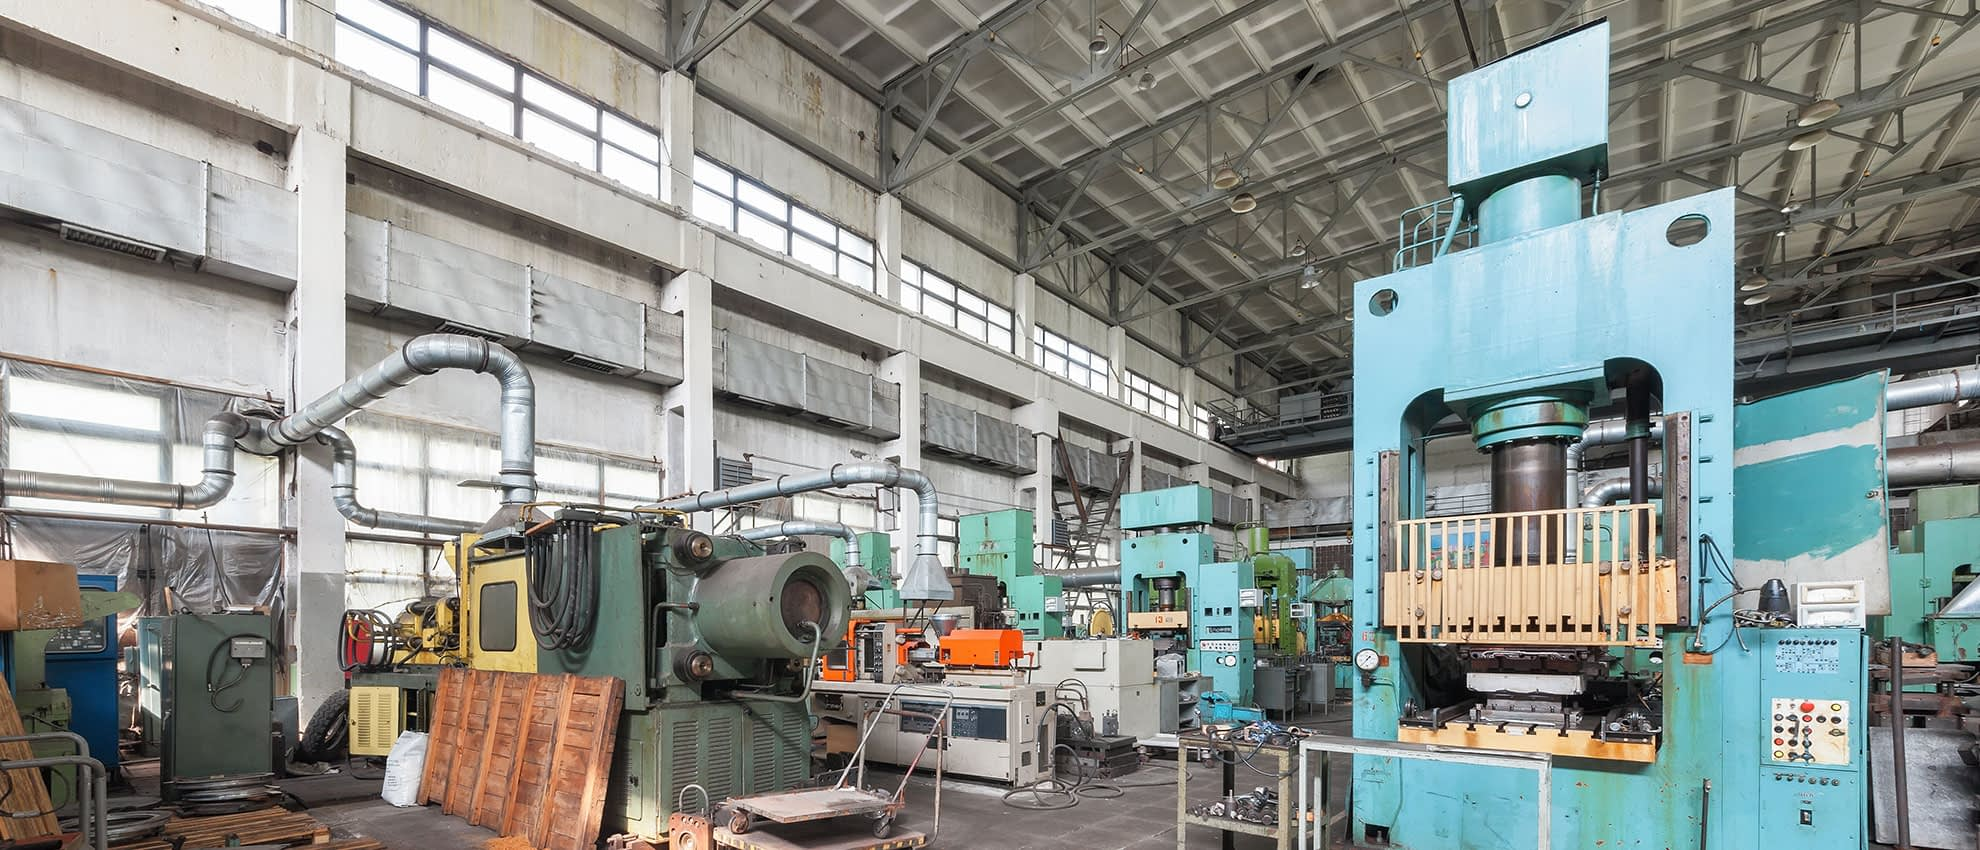 A variety of machines in the factory